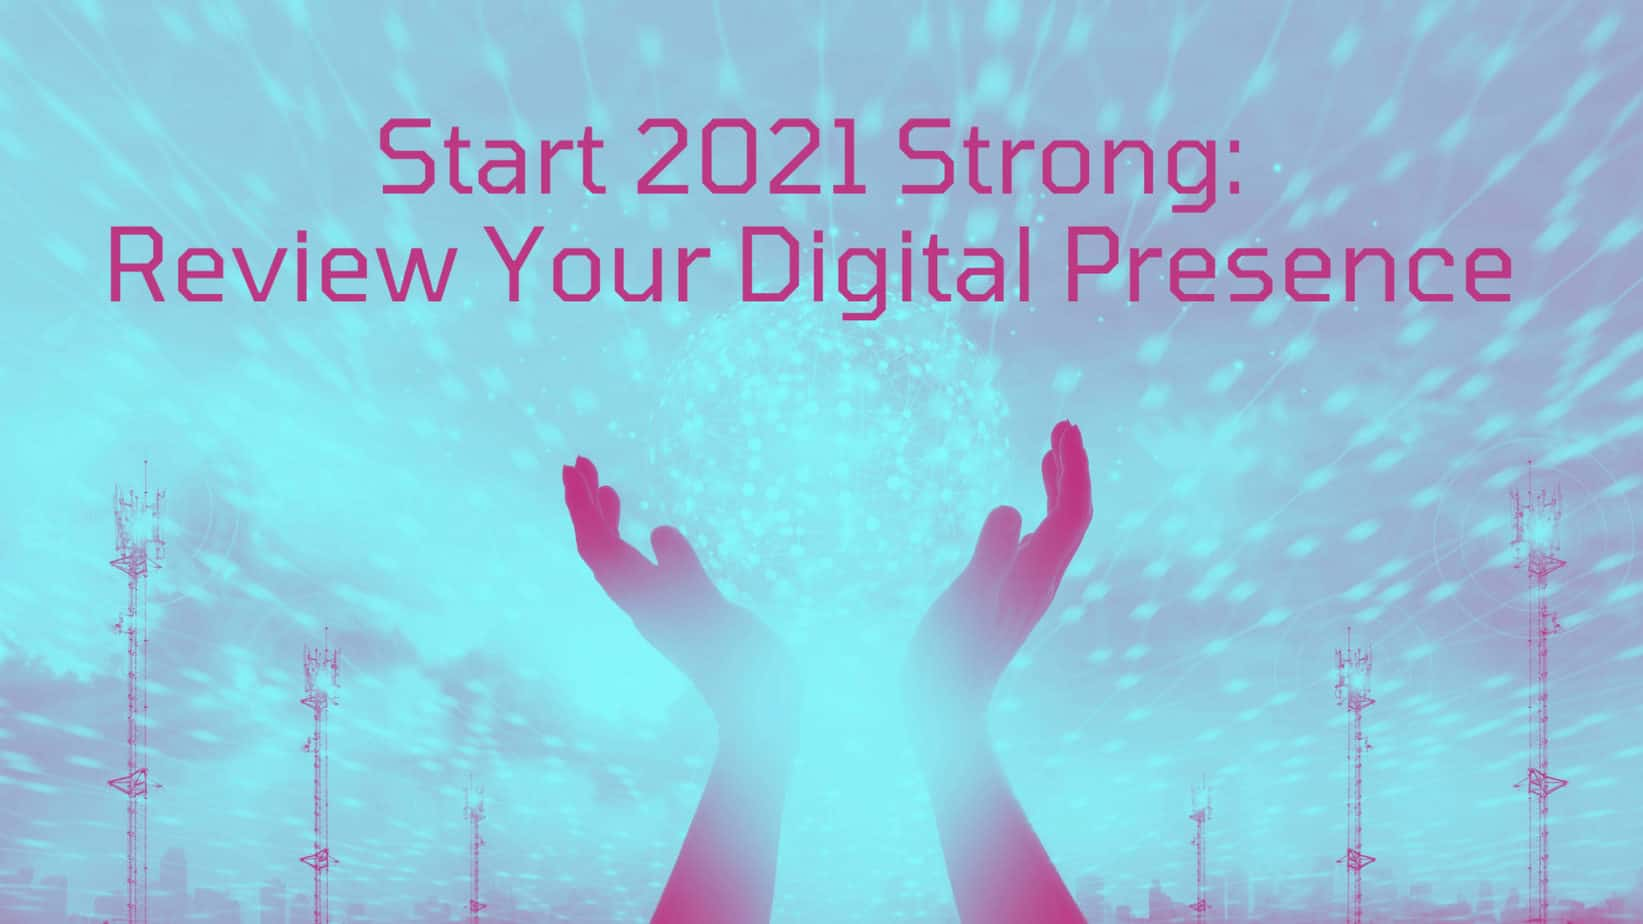 Start 2021 Strong: Review Your Digital Presence